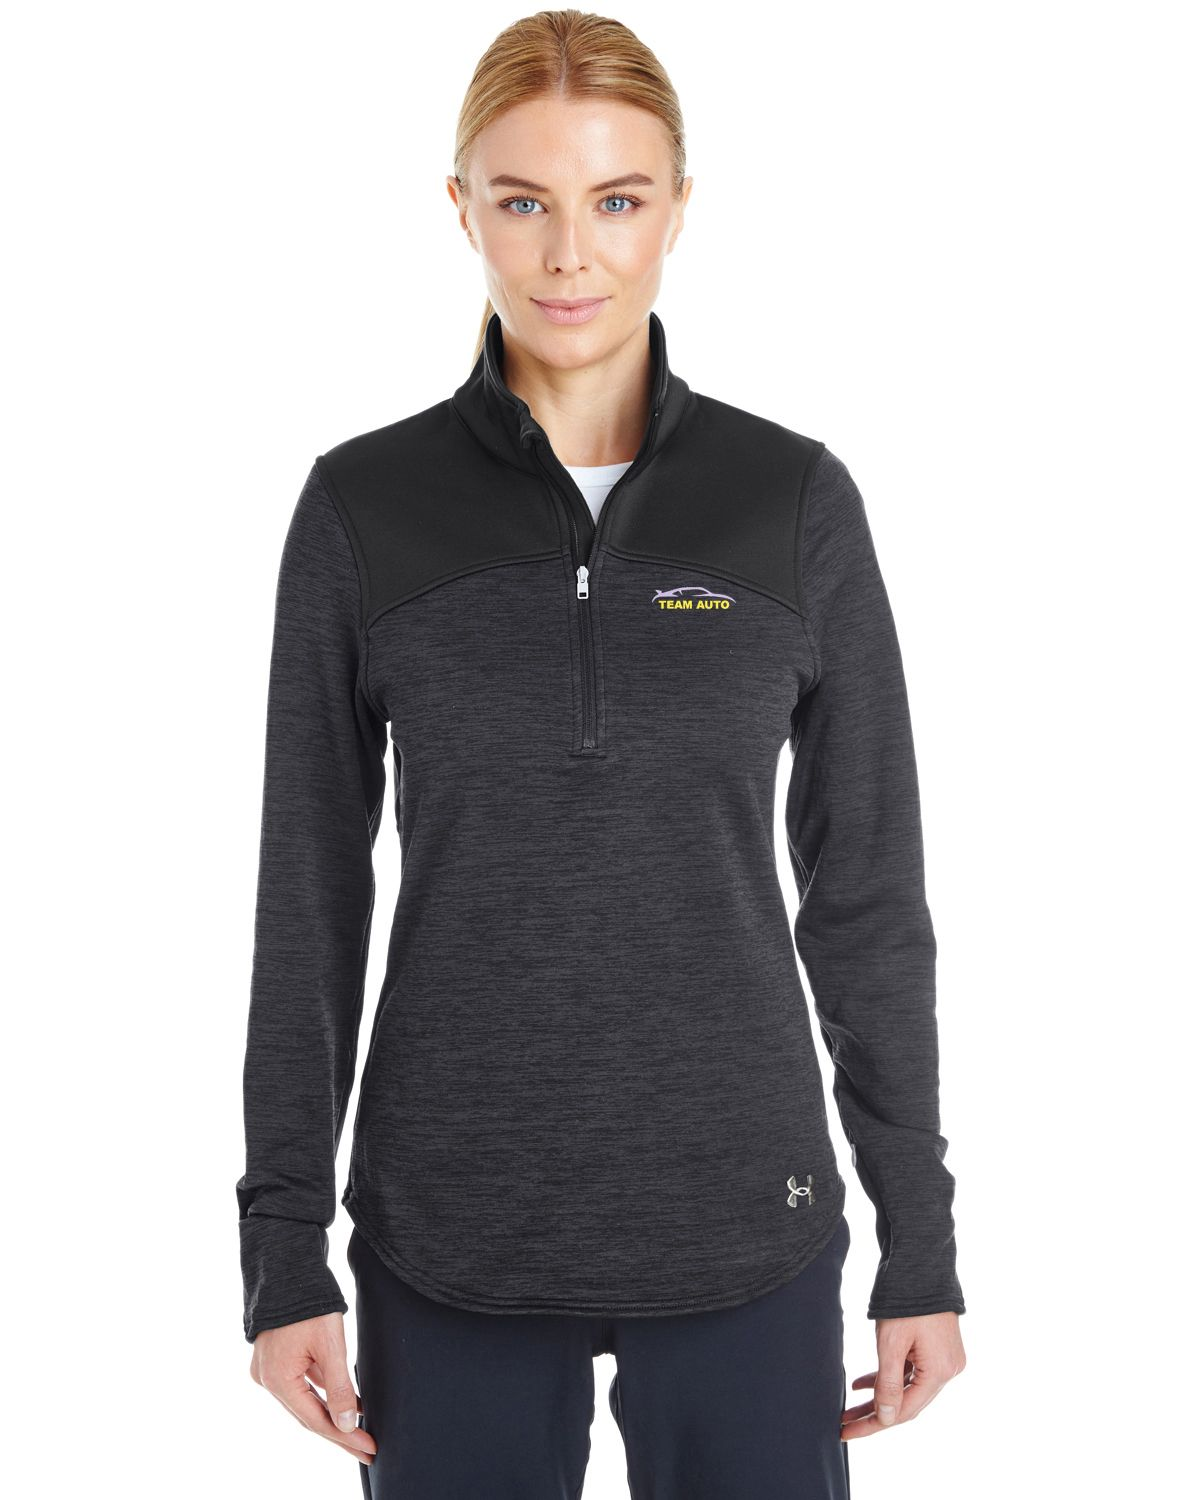 Under Armour 1259525 Women Expanse 14 Zip Free Shipping Available